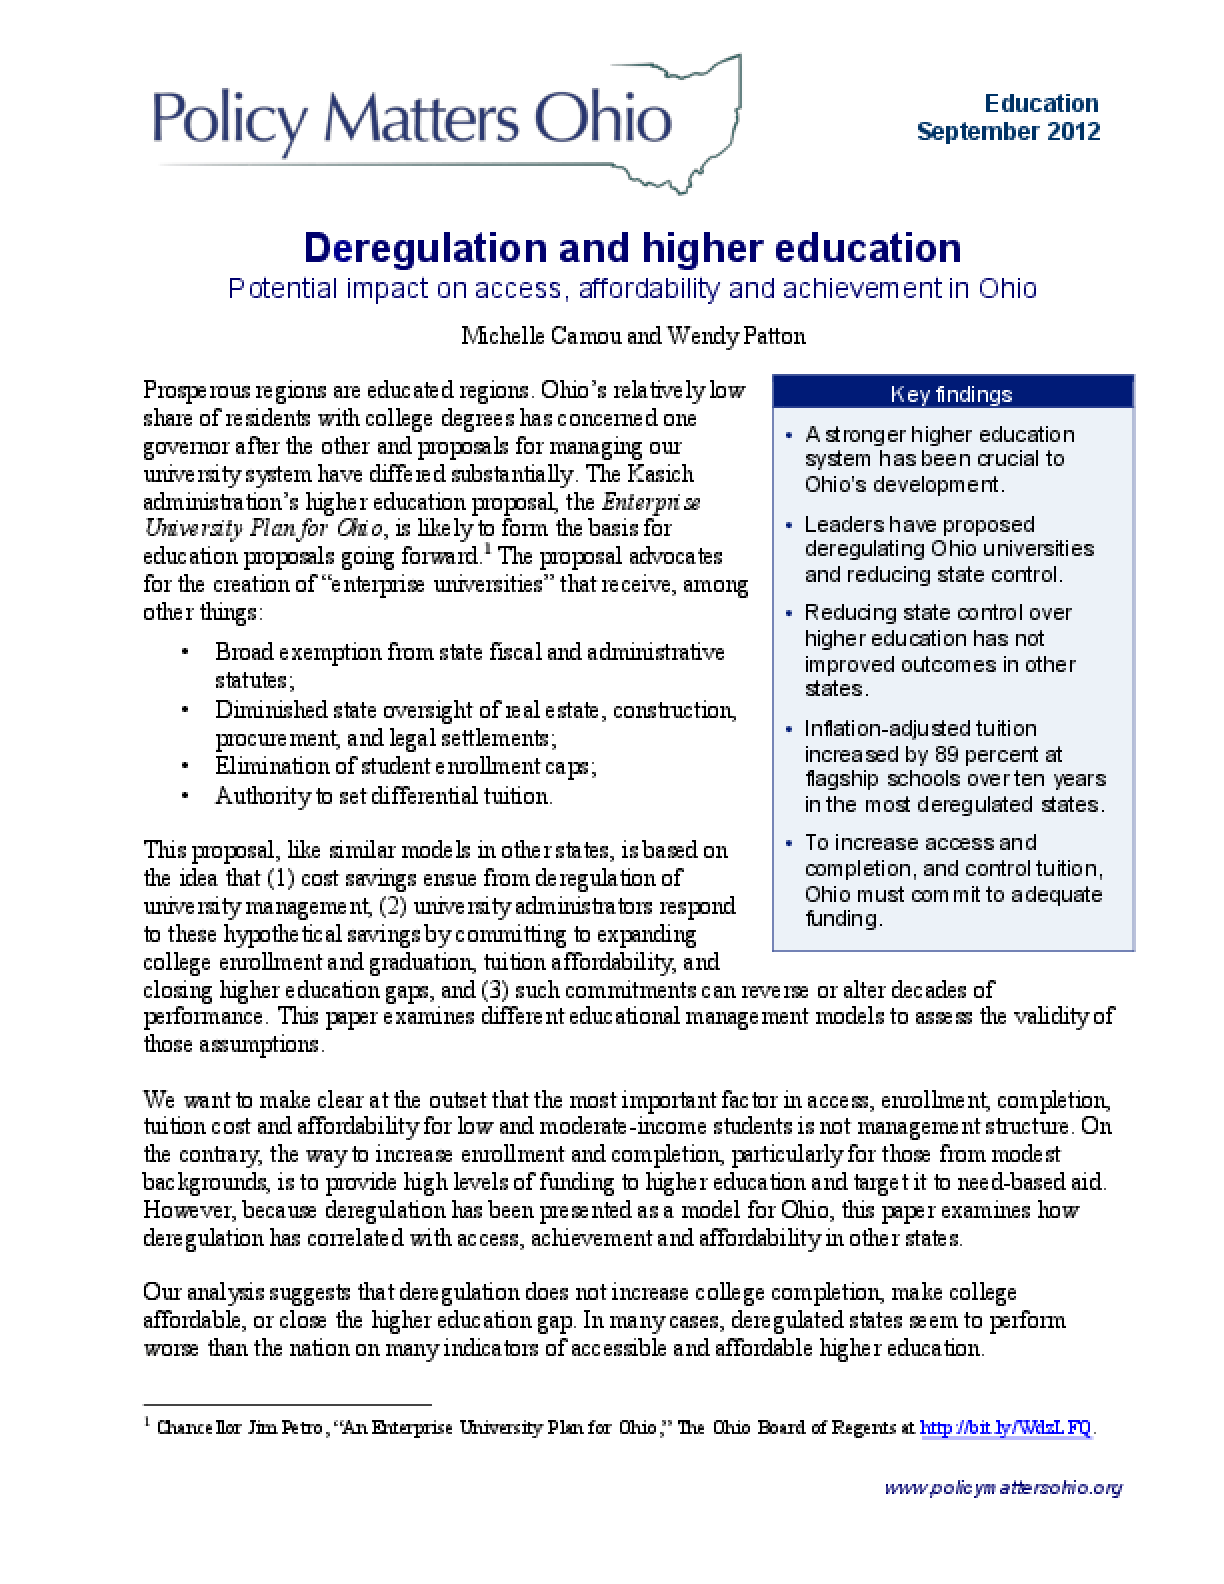 Deregulation and Higher Education: Potential Impact on Access, Affordability and Achievement in Ohio